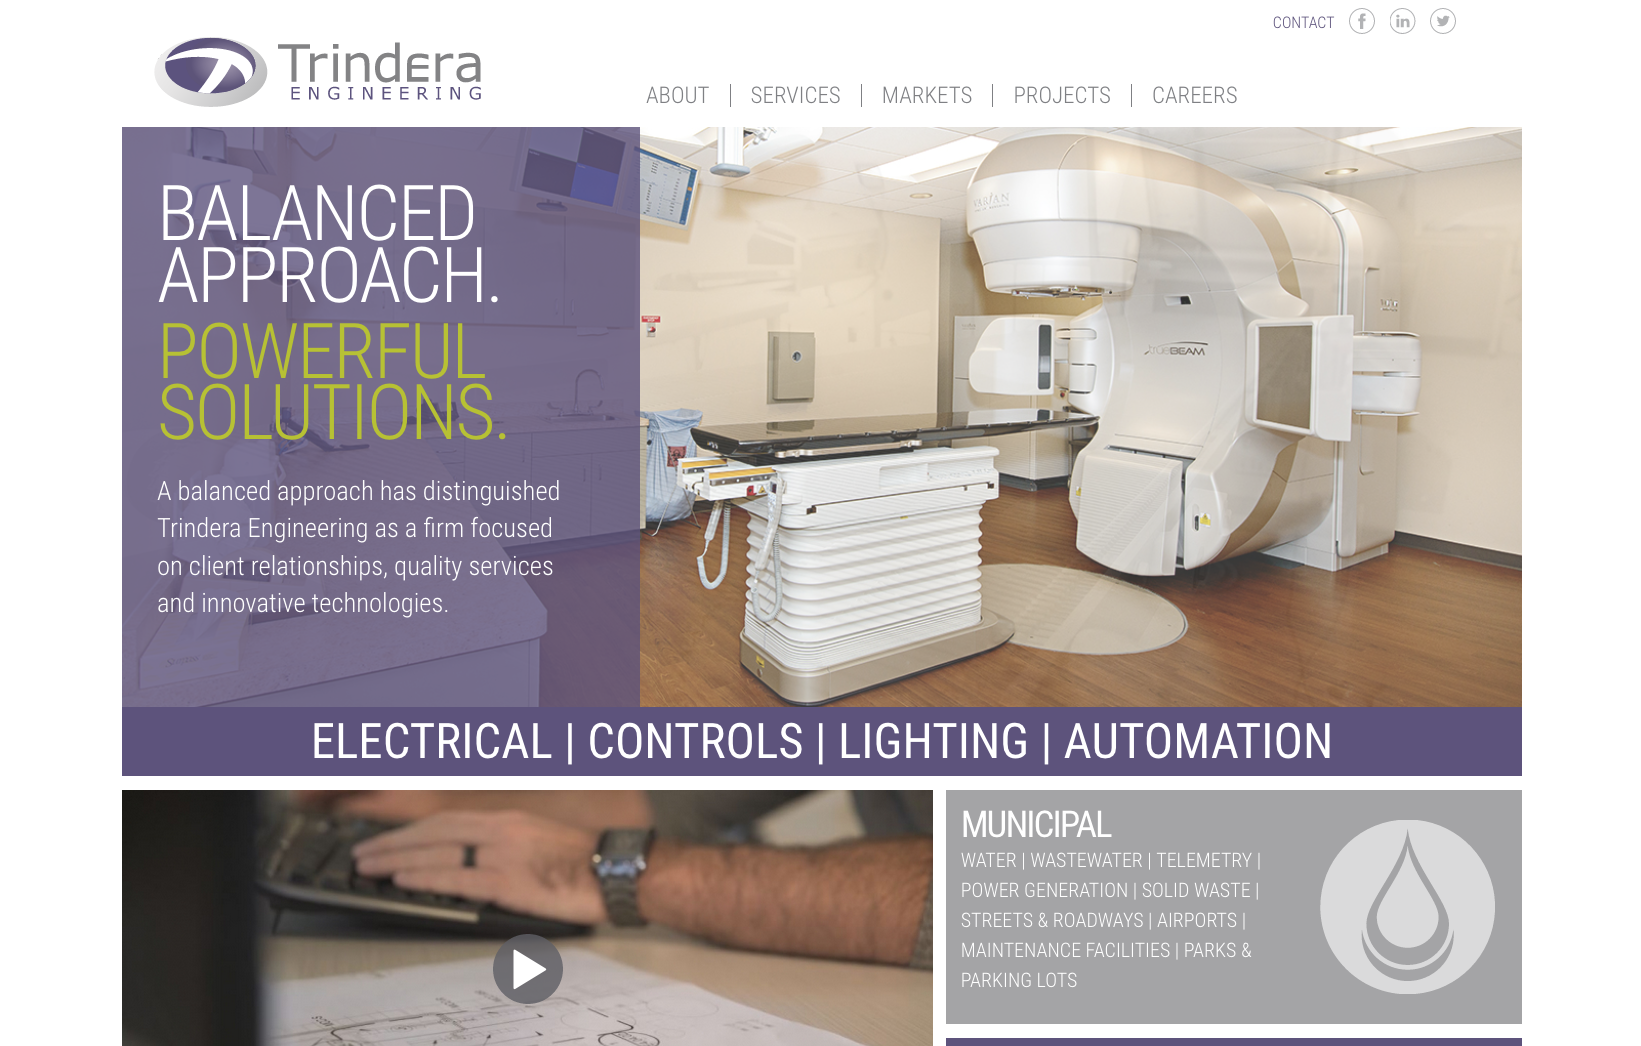 Trindera Engineering (masterys)